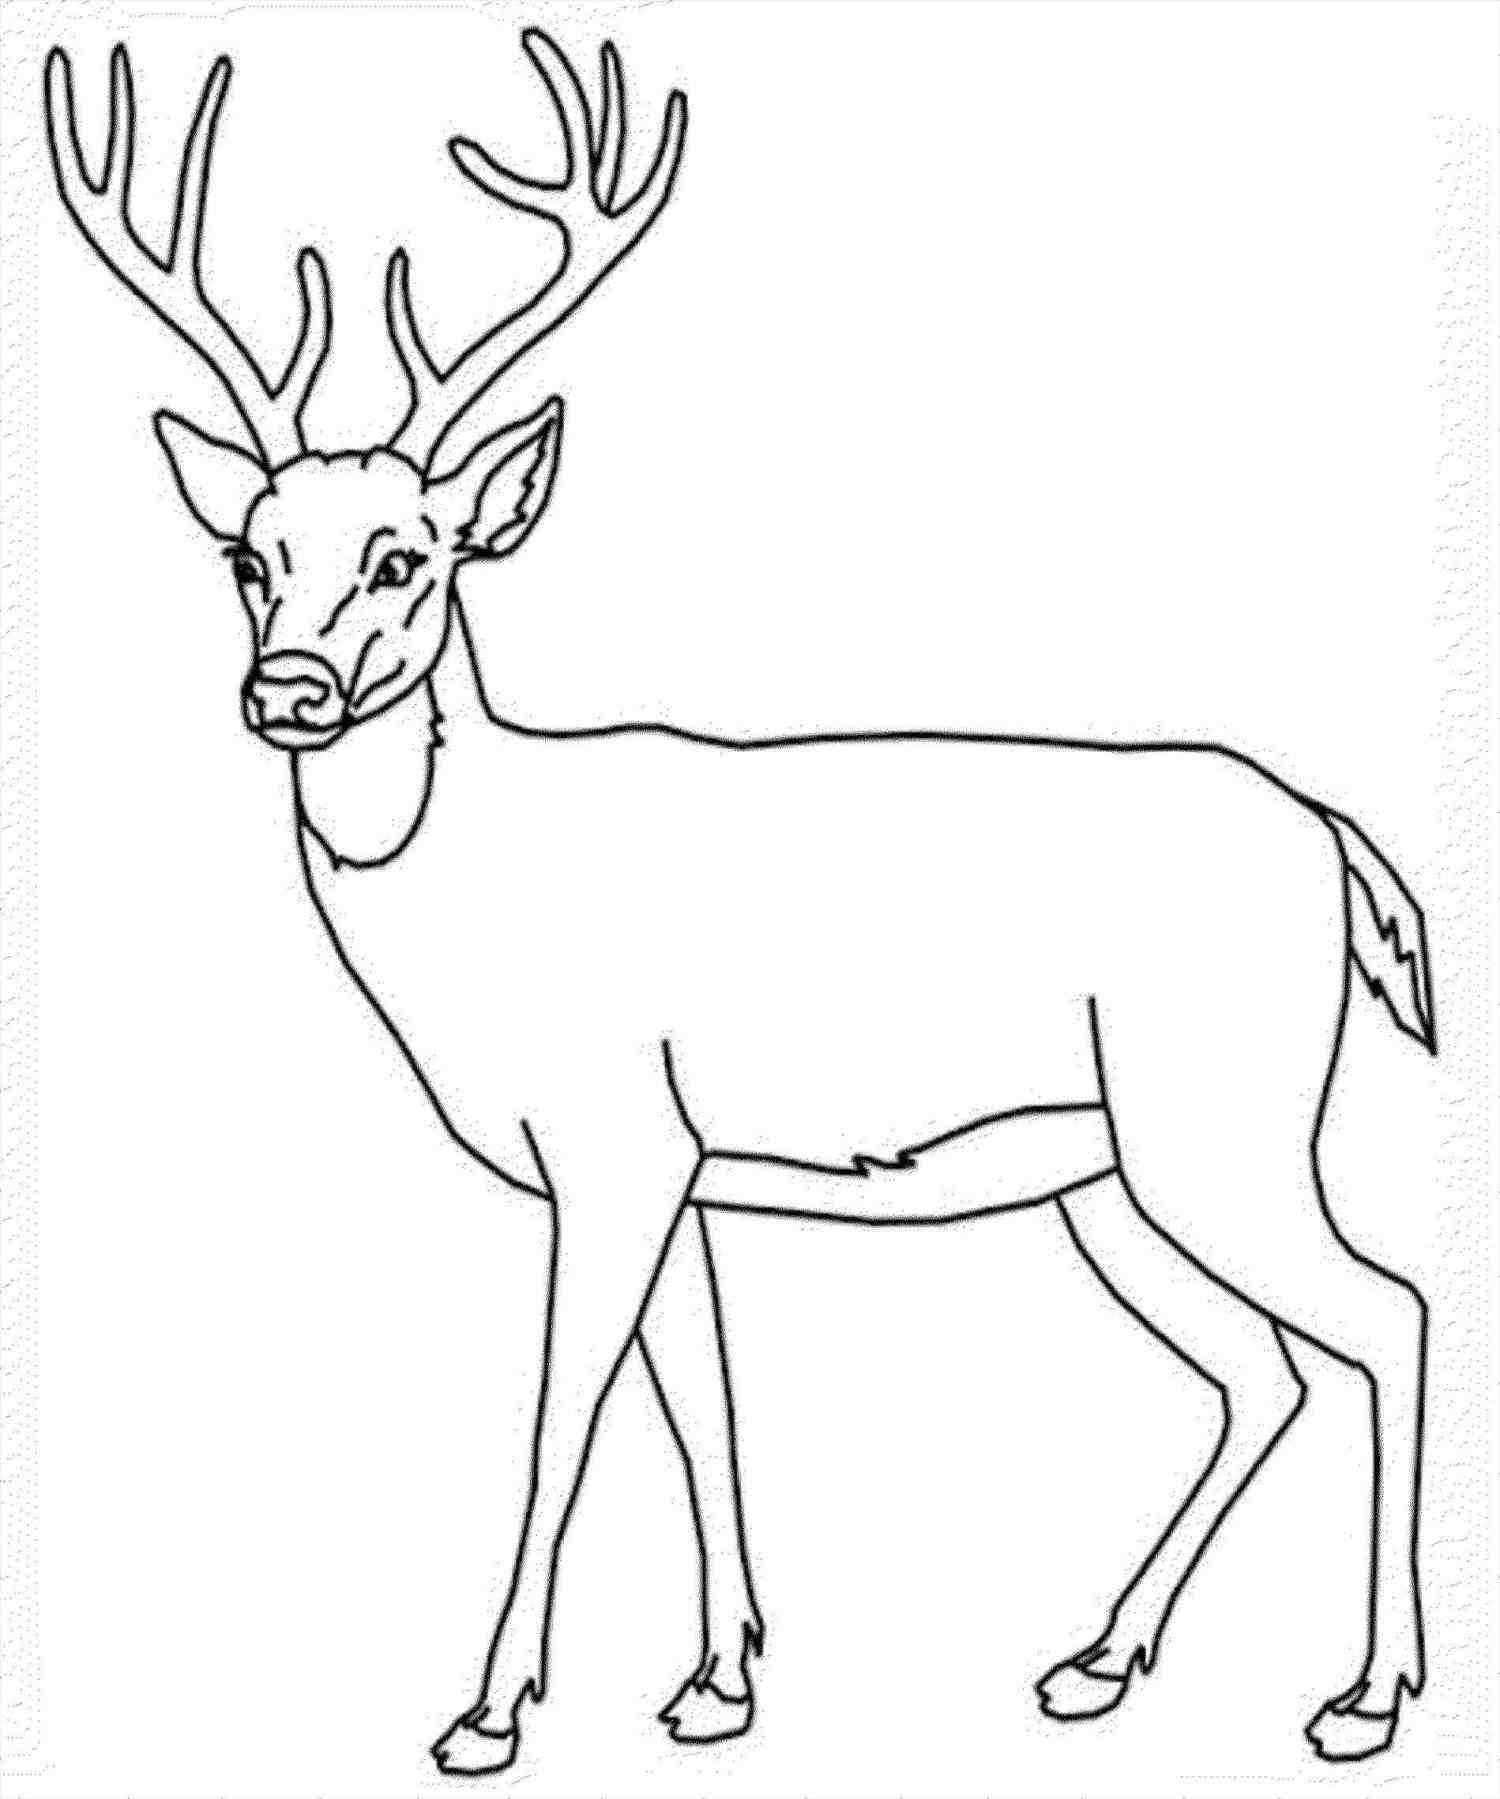 1500x1799 Step 1. . Pin Drawn Moose Pencil Drawing 2. How To Draw